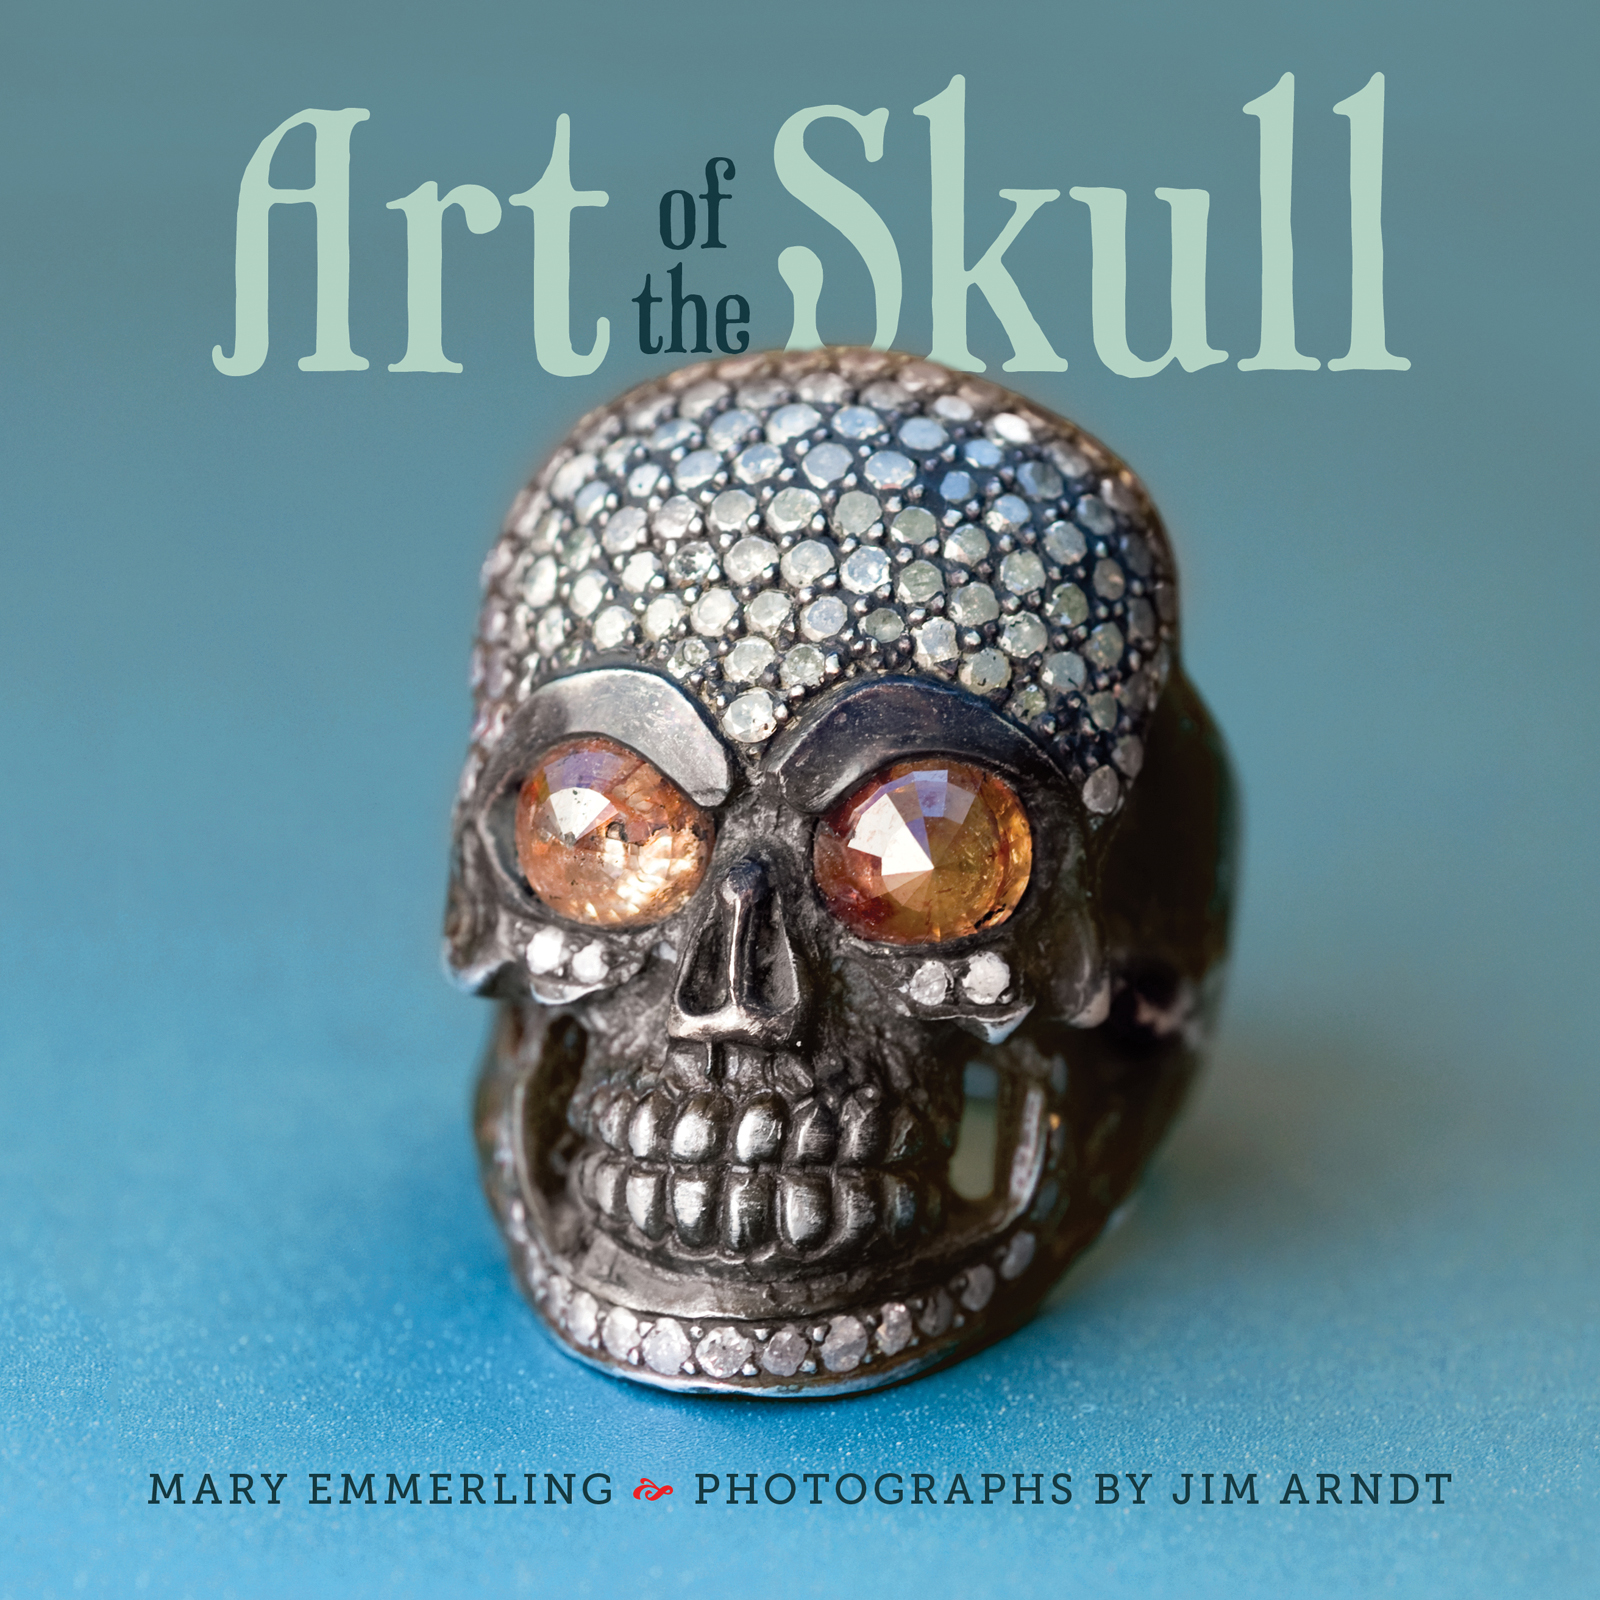 The Art of the Skull